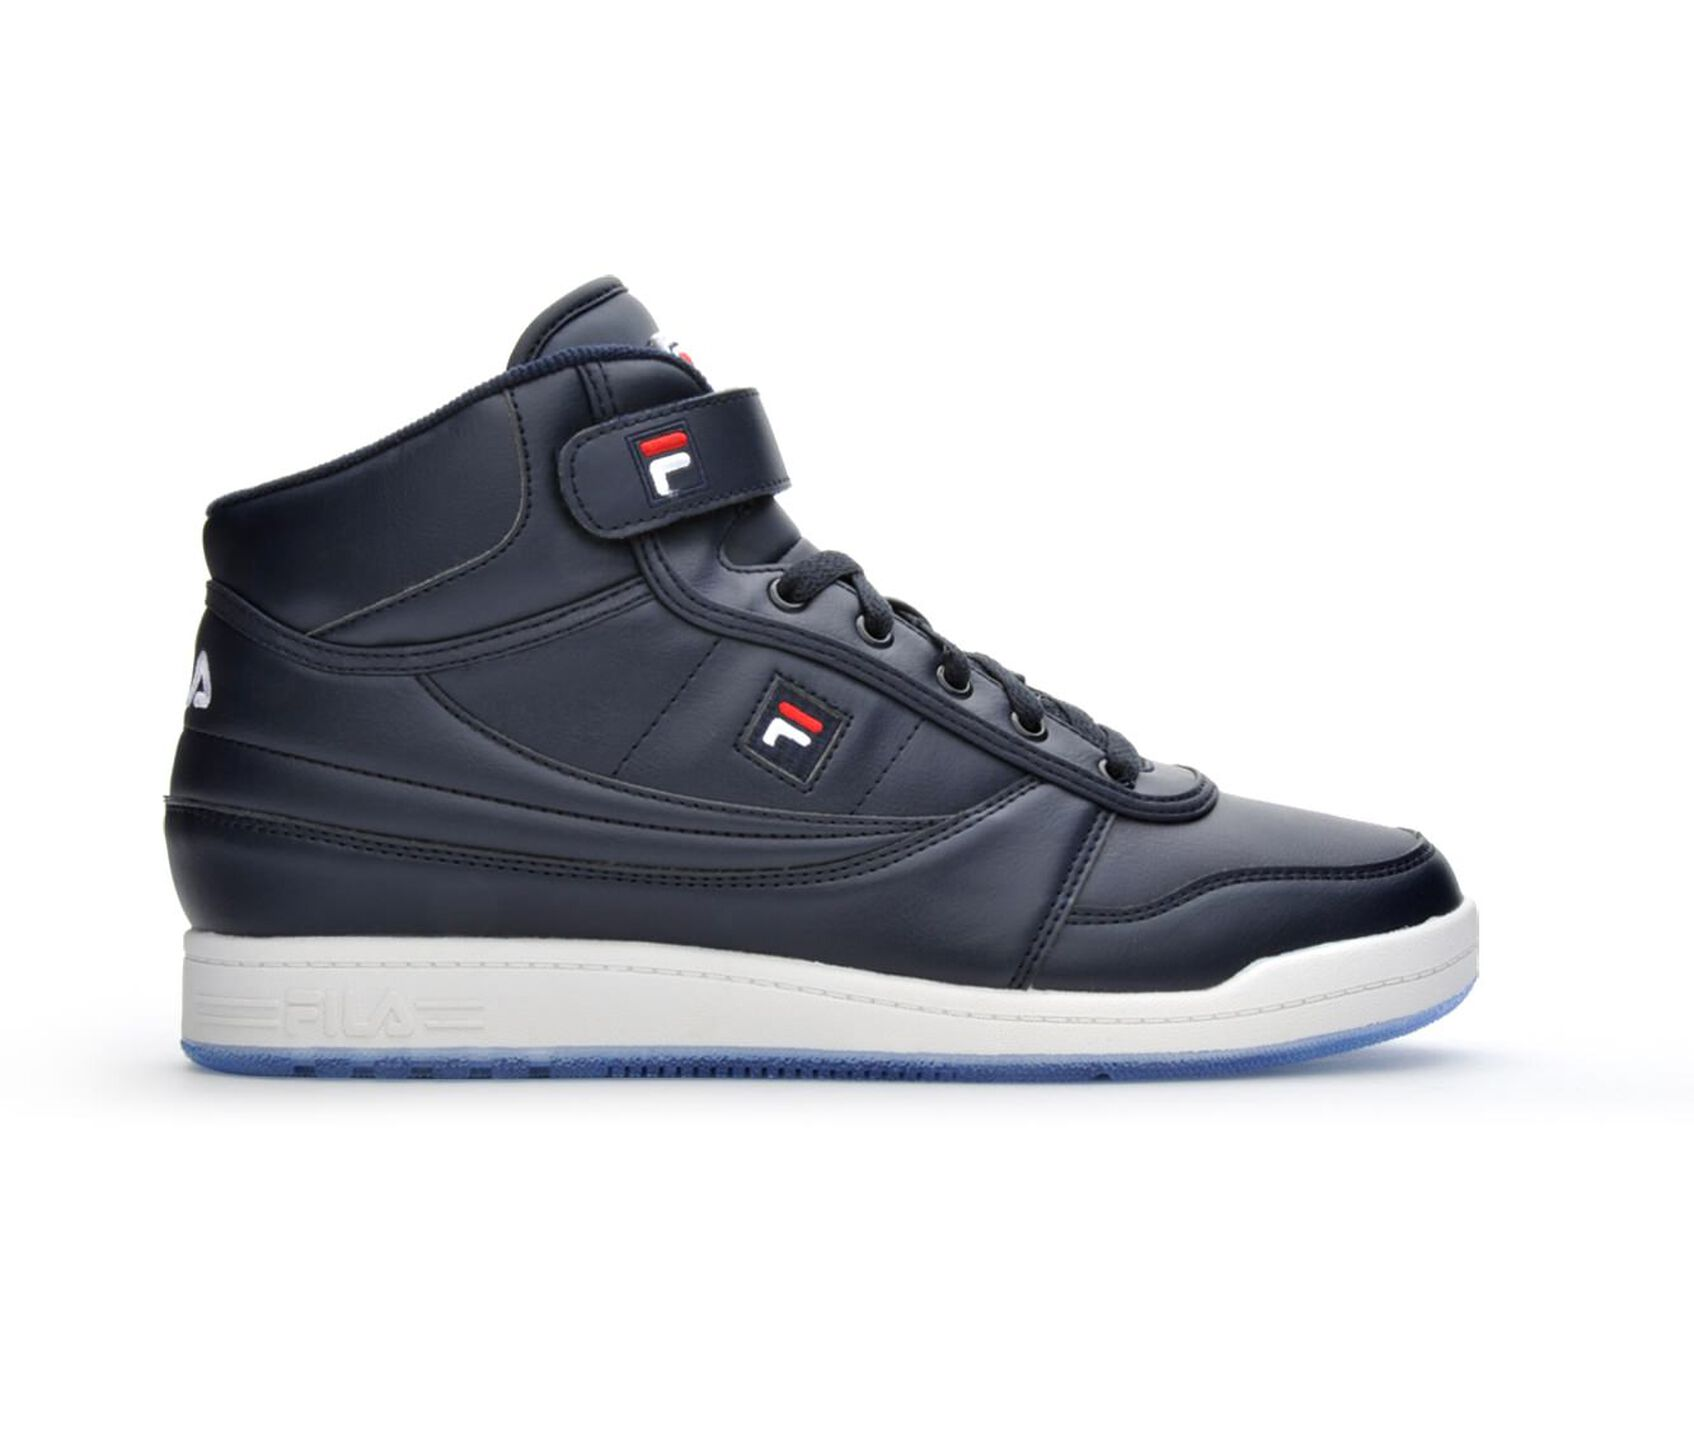 1a648ff8276d Images. Men  39 s Fila BBN 84 Ice High Top Retro Sneakers